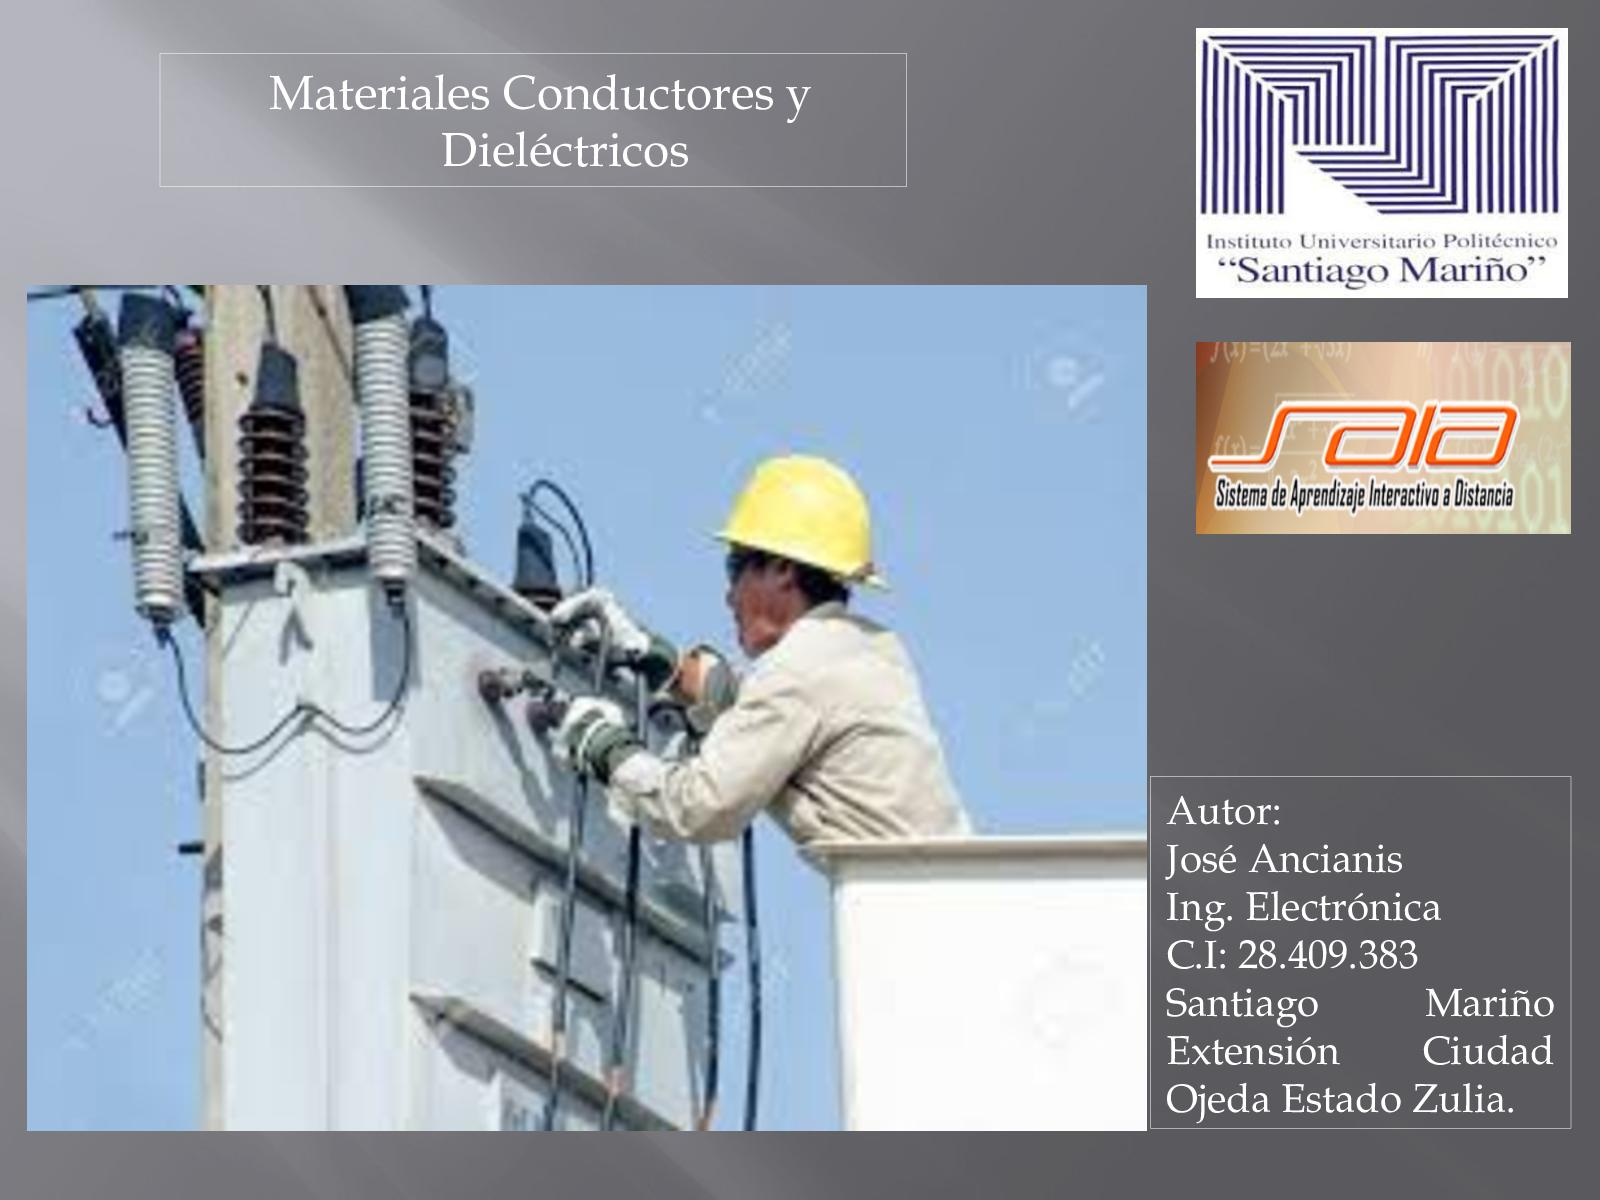 Revista Educativa Materiales Conductores Y Dieléctricos